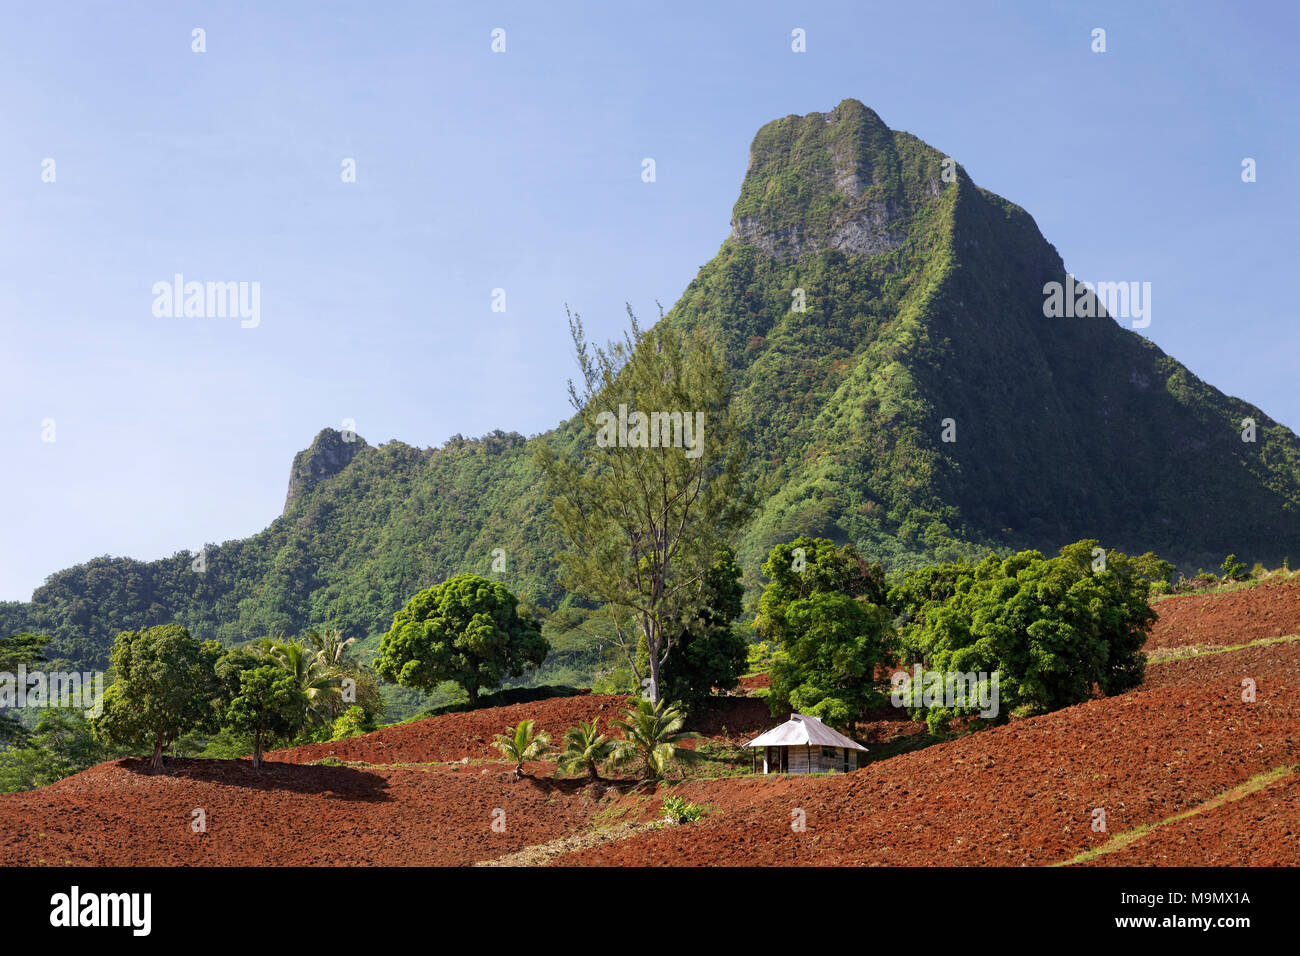 Agricultural land, arable land, cultivation, in the mountainous highlands, Moorea, society islands, Windward Islands - Stock Image